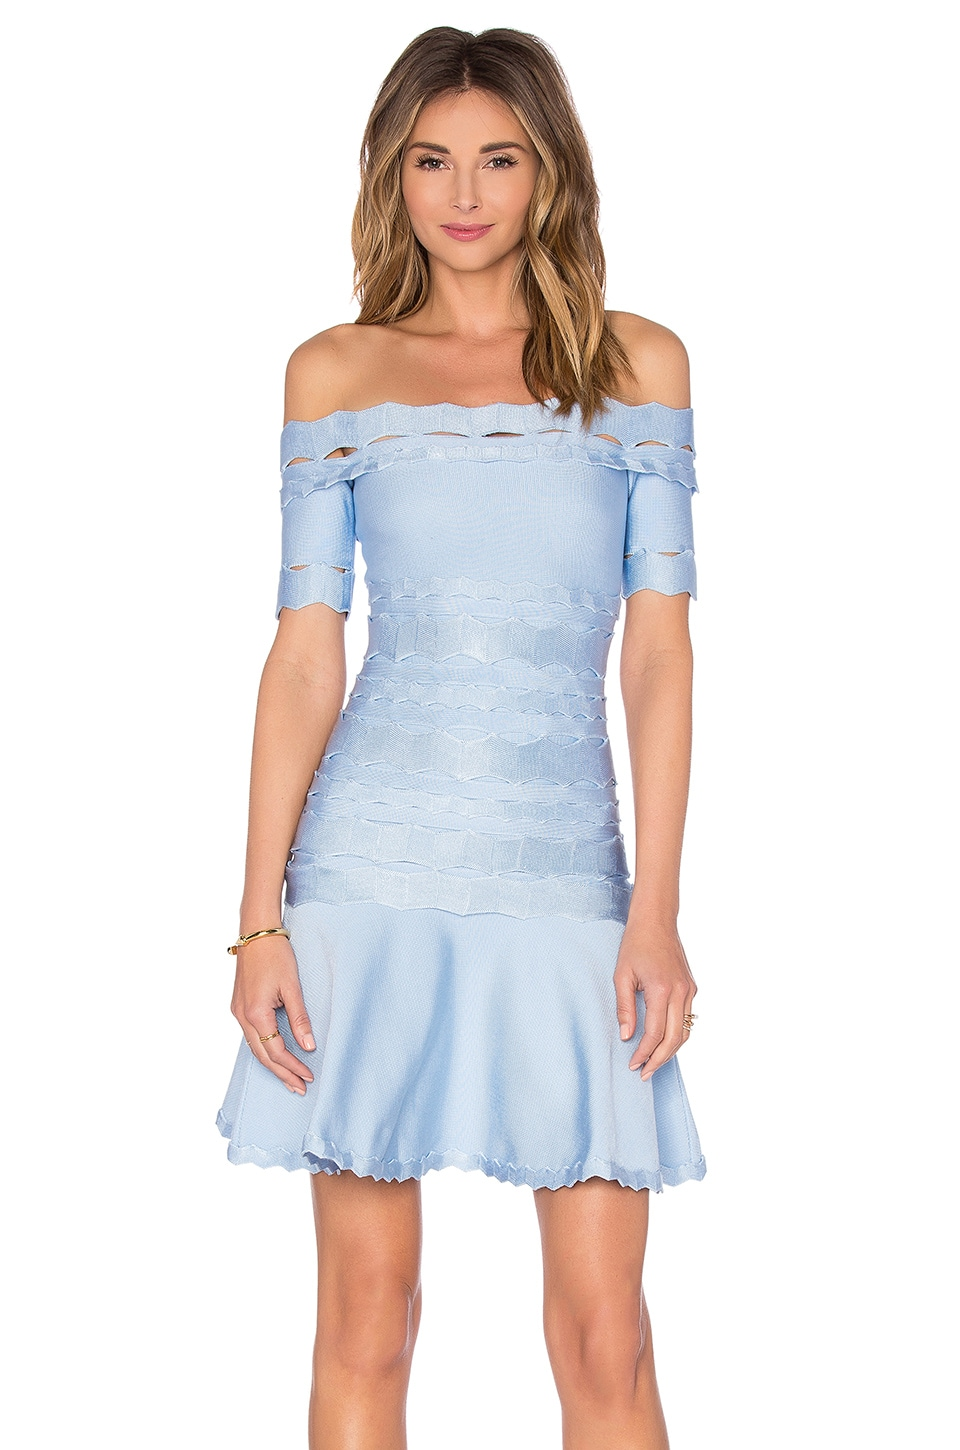 LOLITTA Squiggle Detail Flare Mini Dress in Light Blue